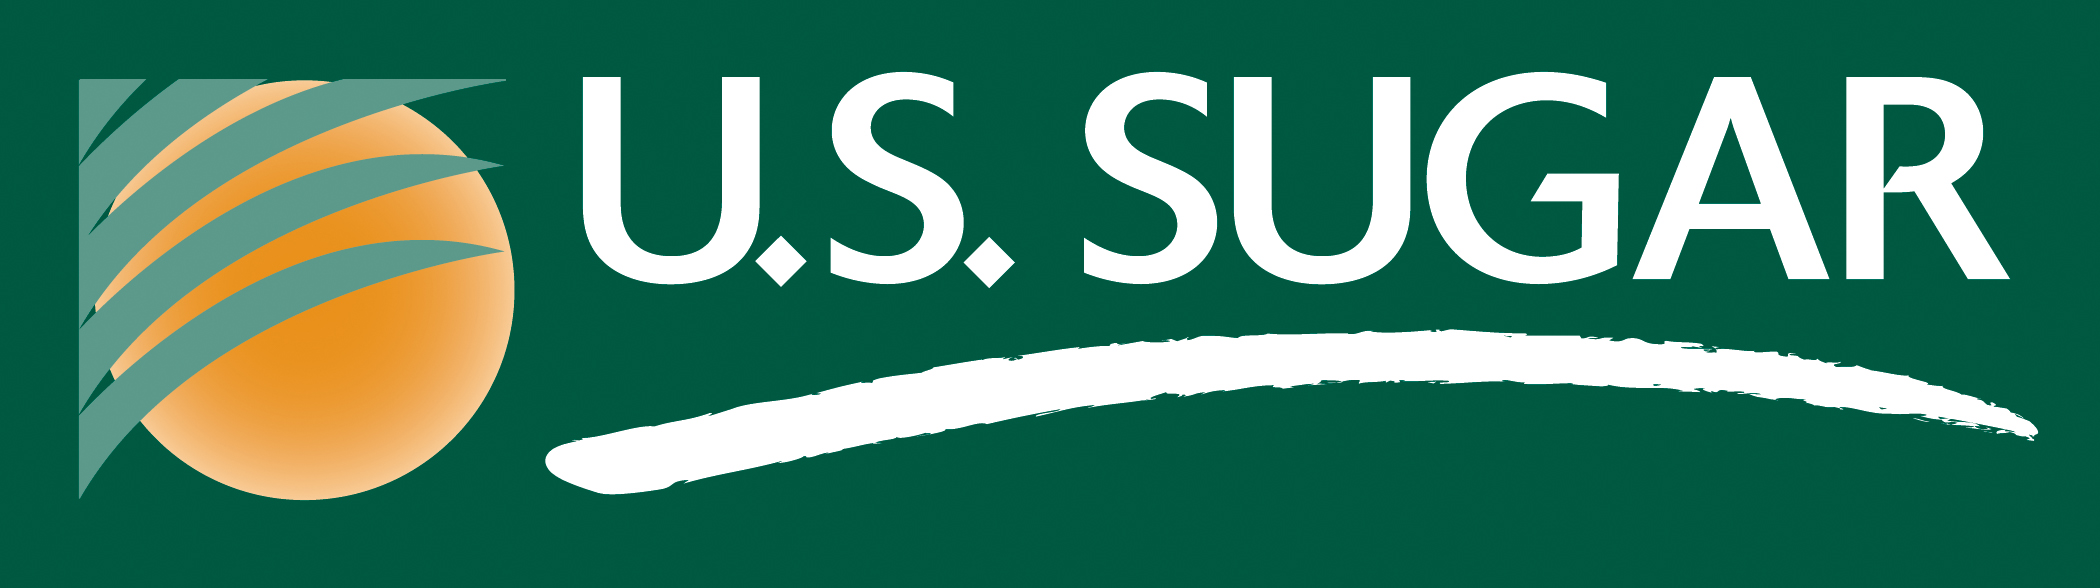 US-Sugar logo